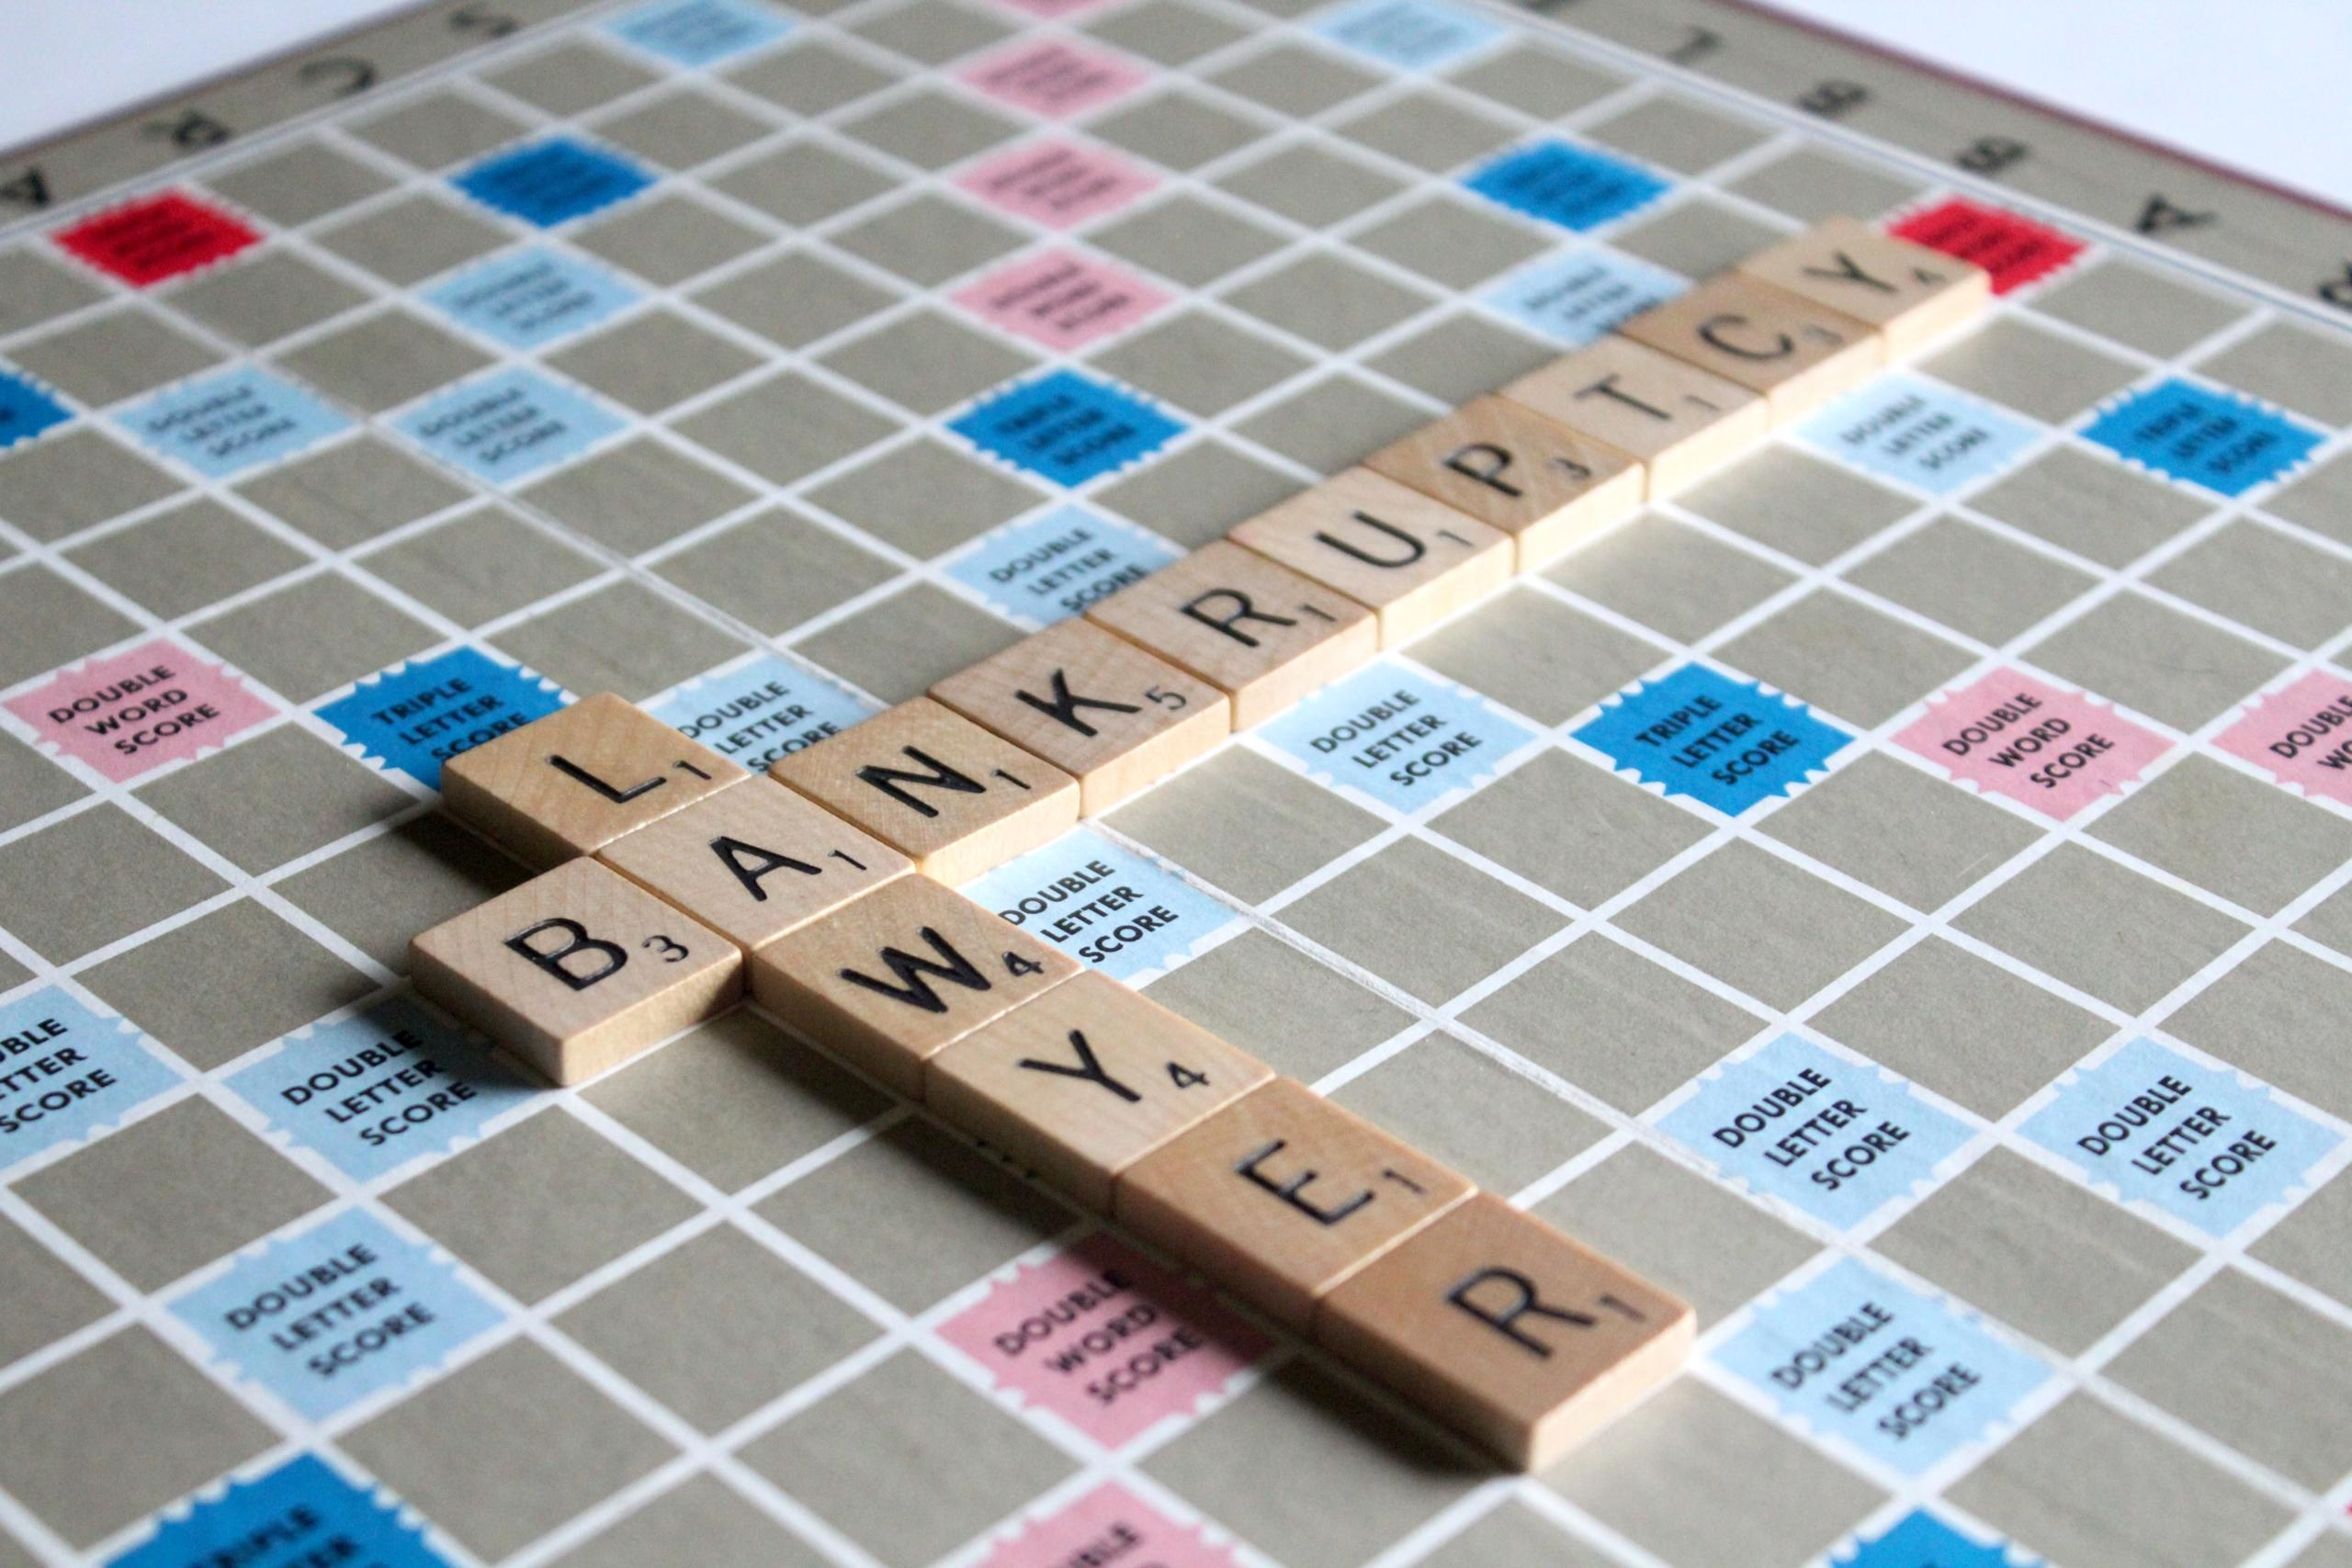 Scrabble Board with tiles spelling out Bankruptcy Lawyer